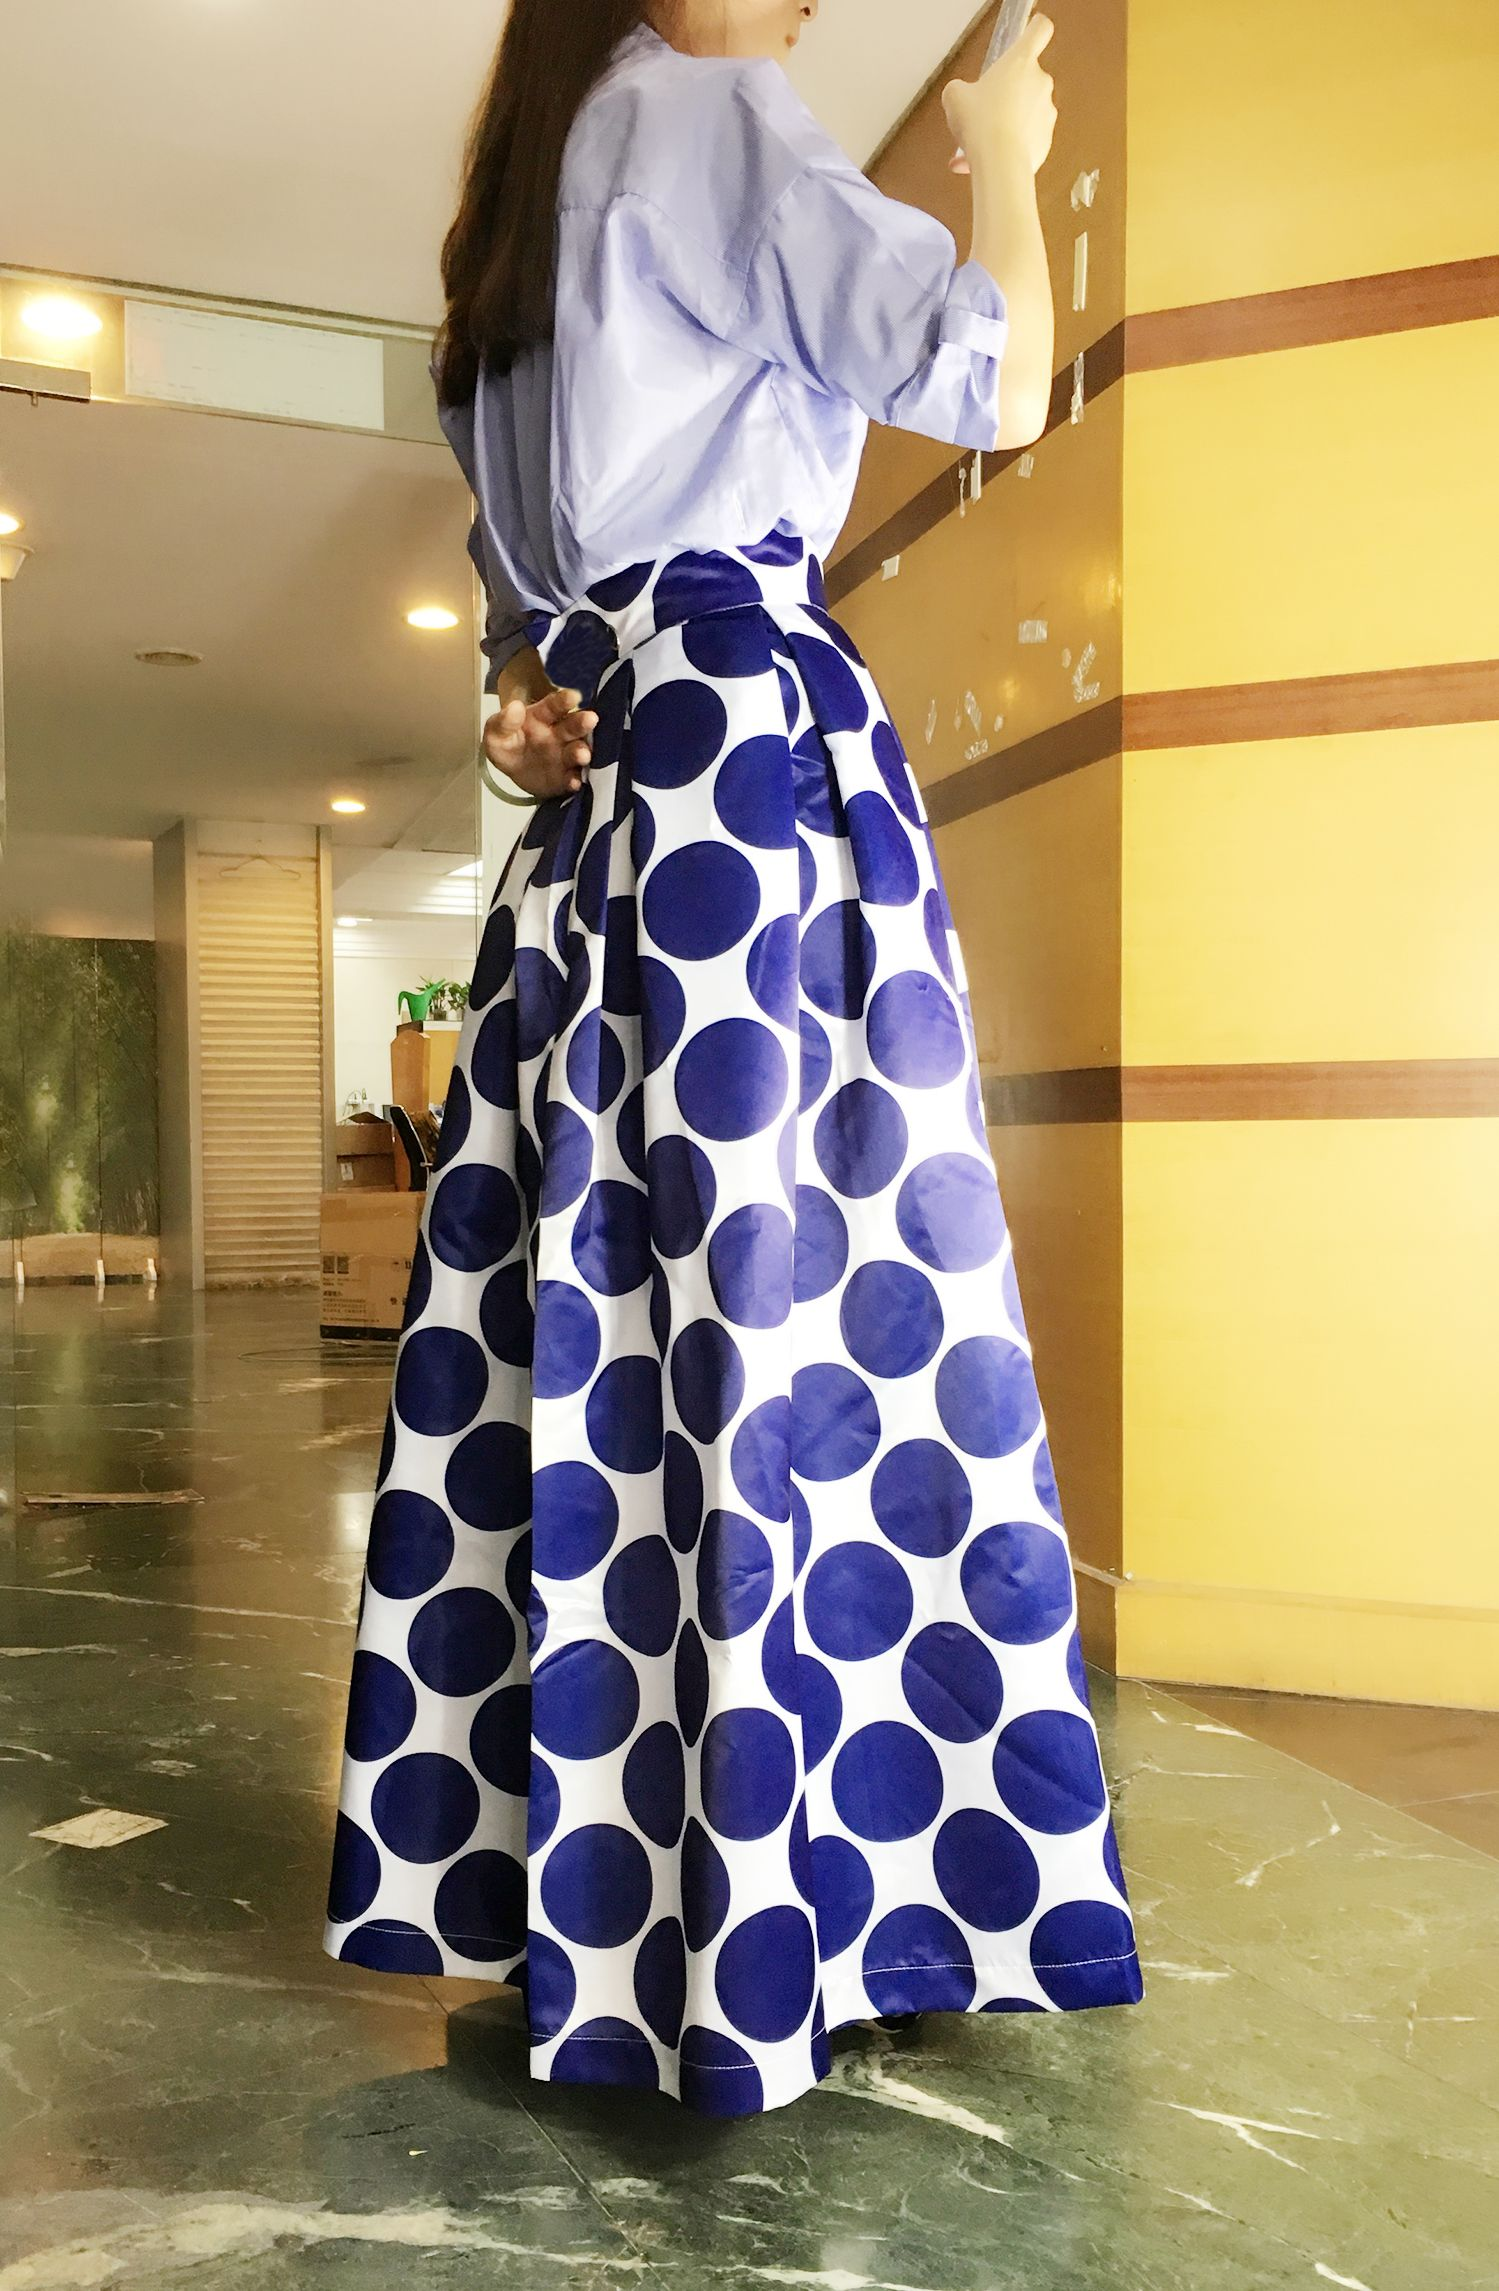 The skirt is featuring color block polka dot print, high waist and slim fit. More surprise, plz check www.azbro.com!